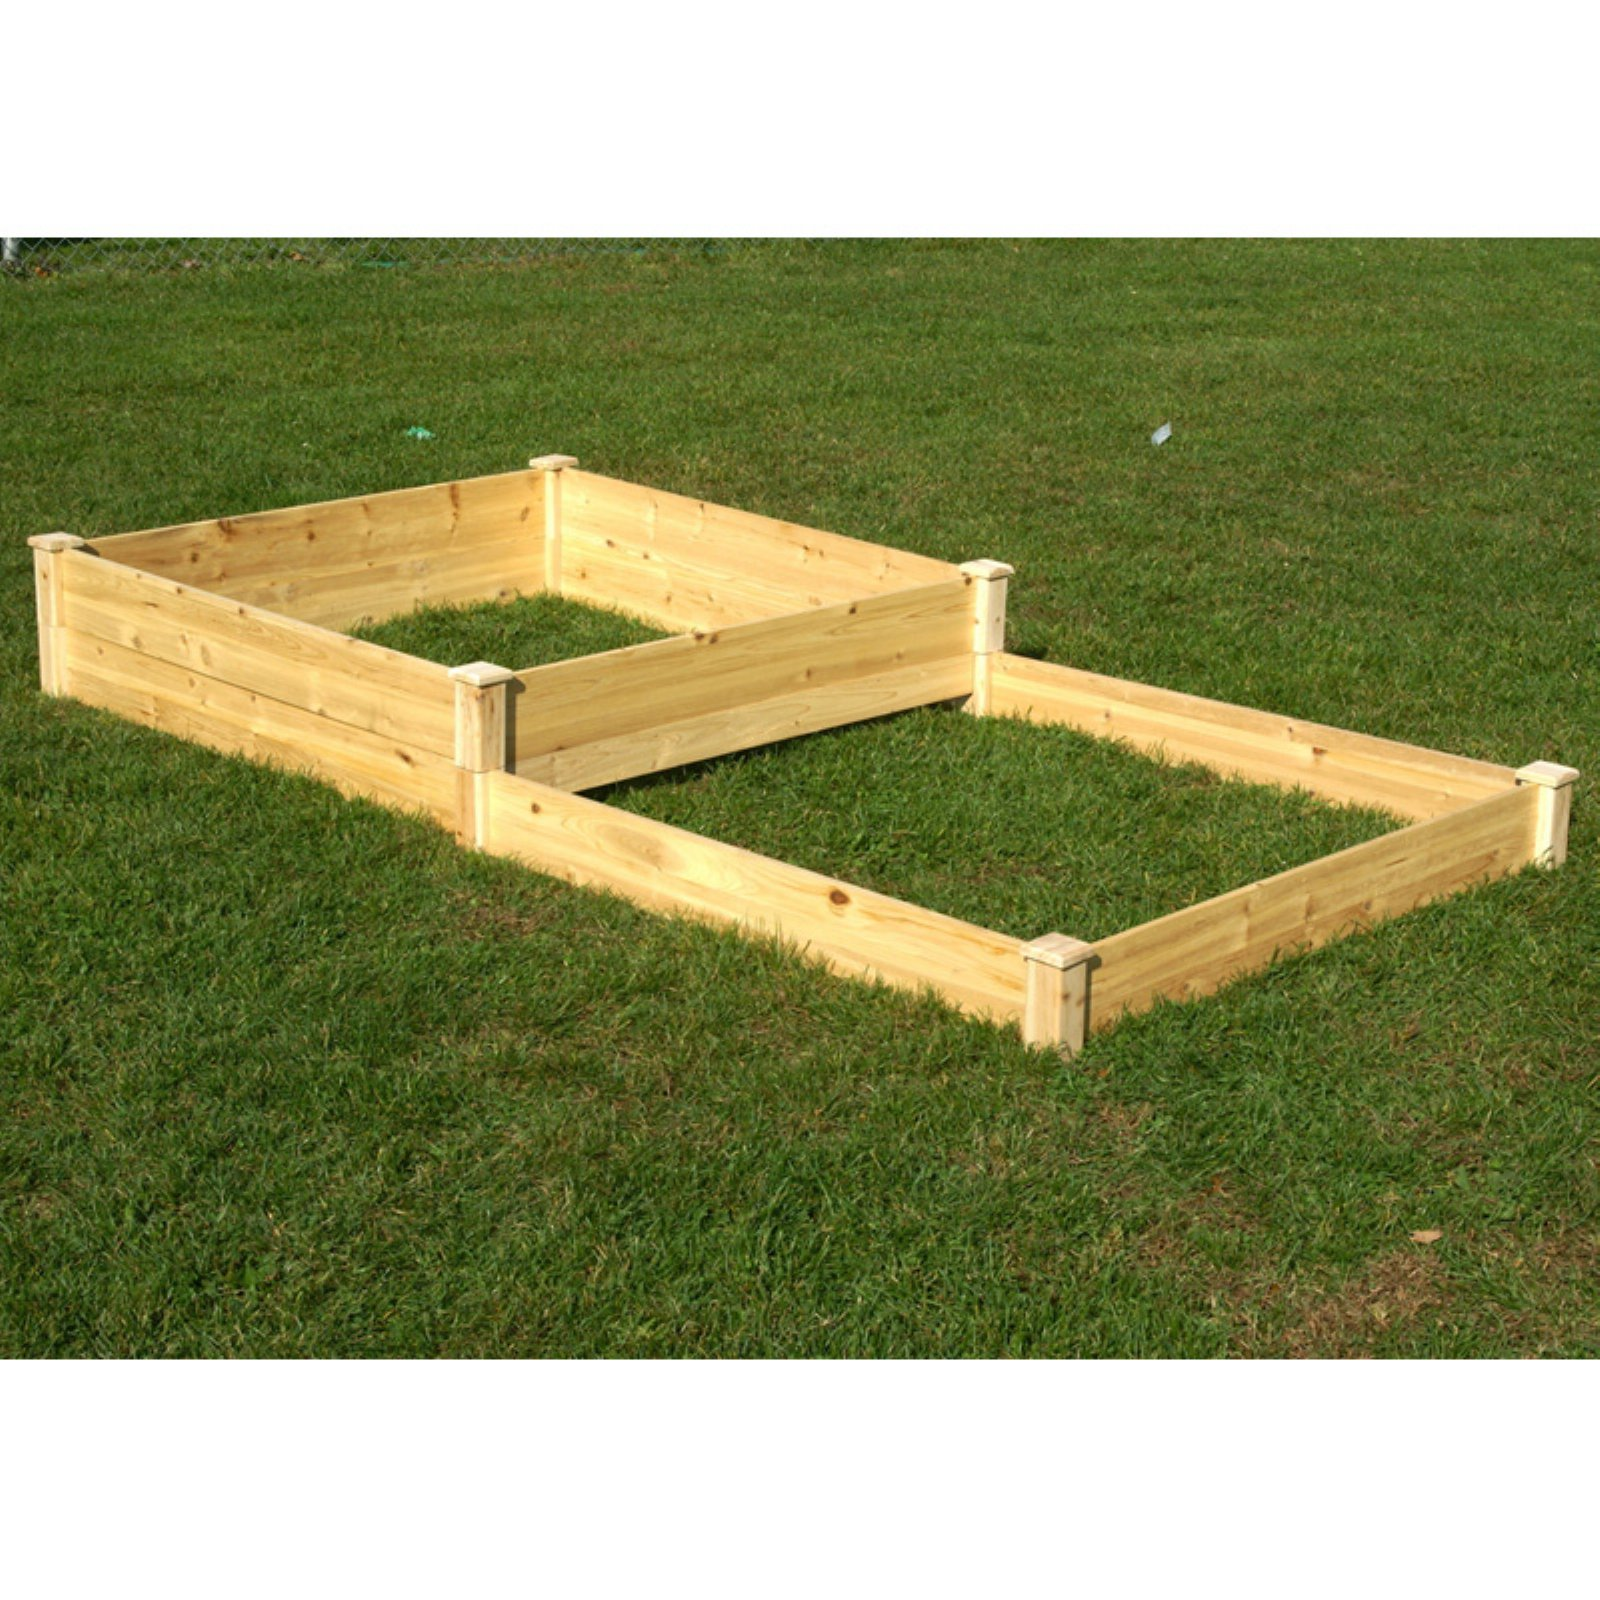 Eden 2-Tier Raised Garden Bed - 8 x 4 ft.